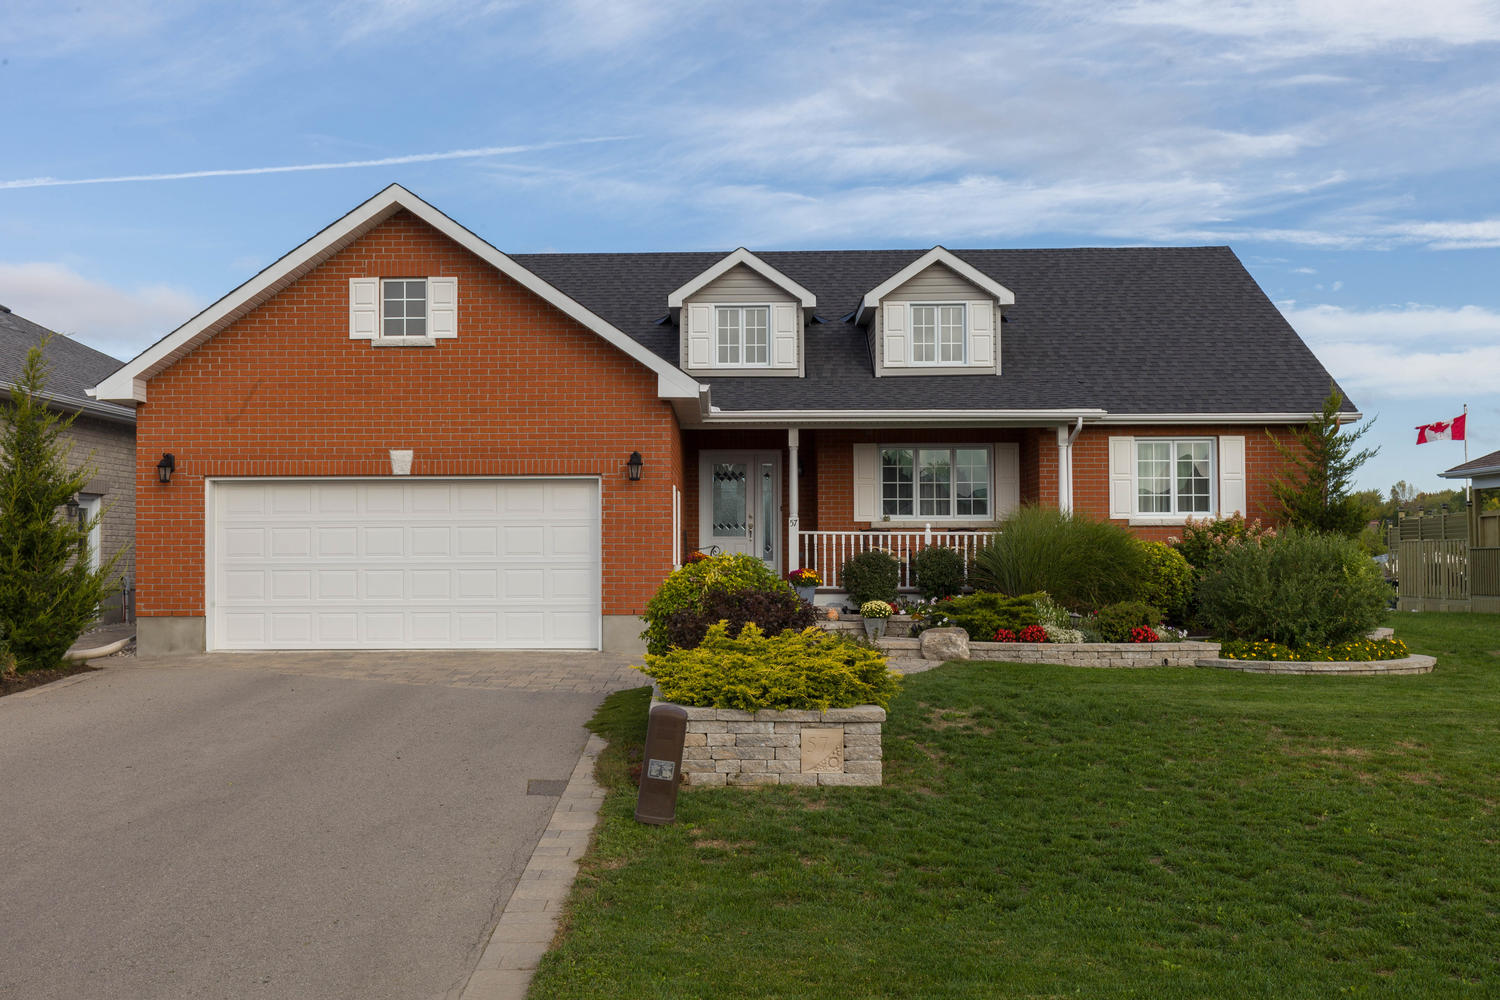 A stunning bungalow on a beautifully landscaped lot.